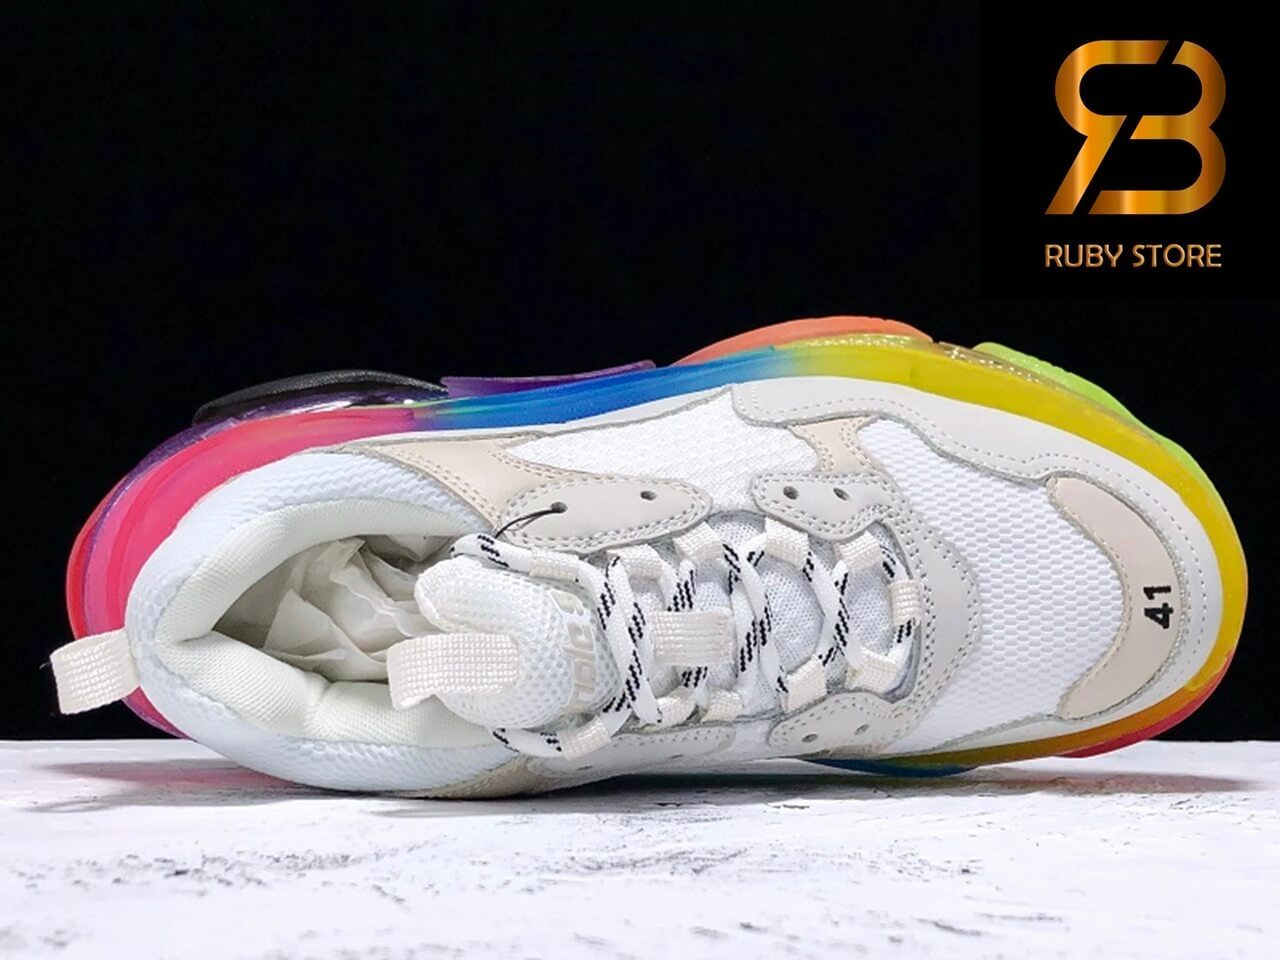 giày balenciaga triple s clear sole multicolor replica 1:1 siêu cấp